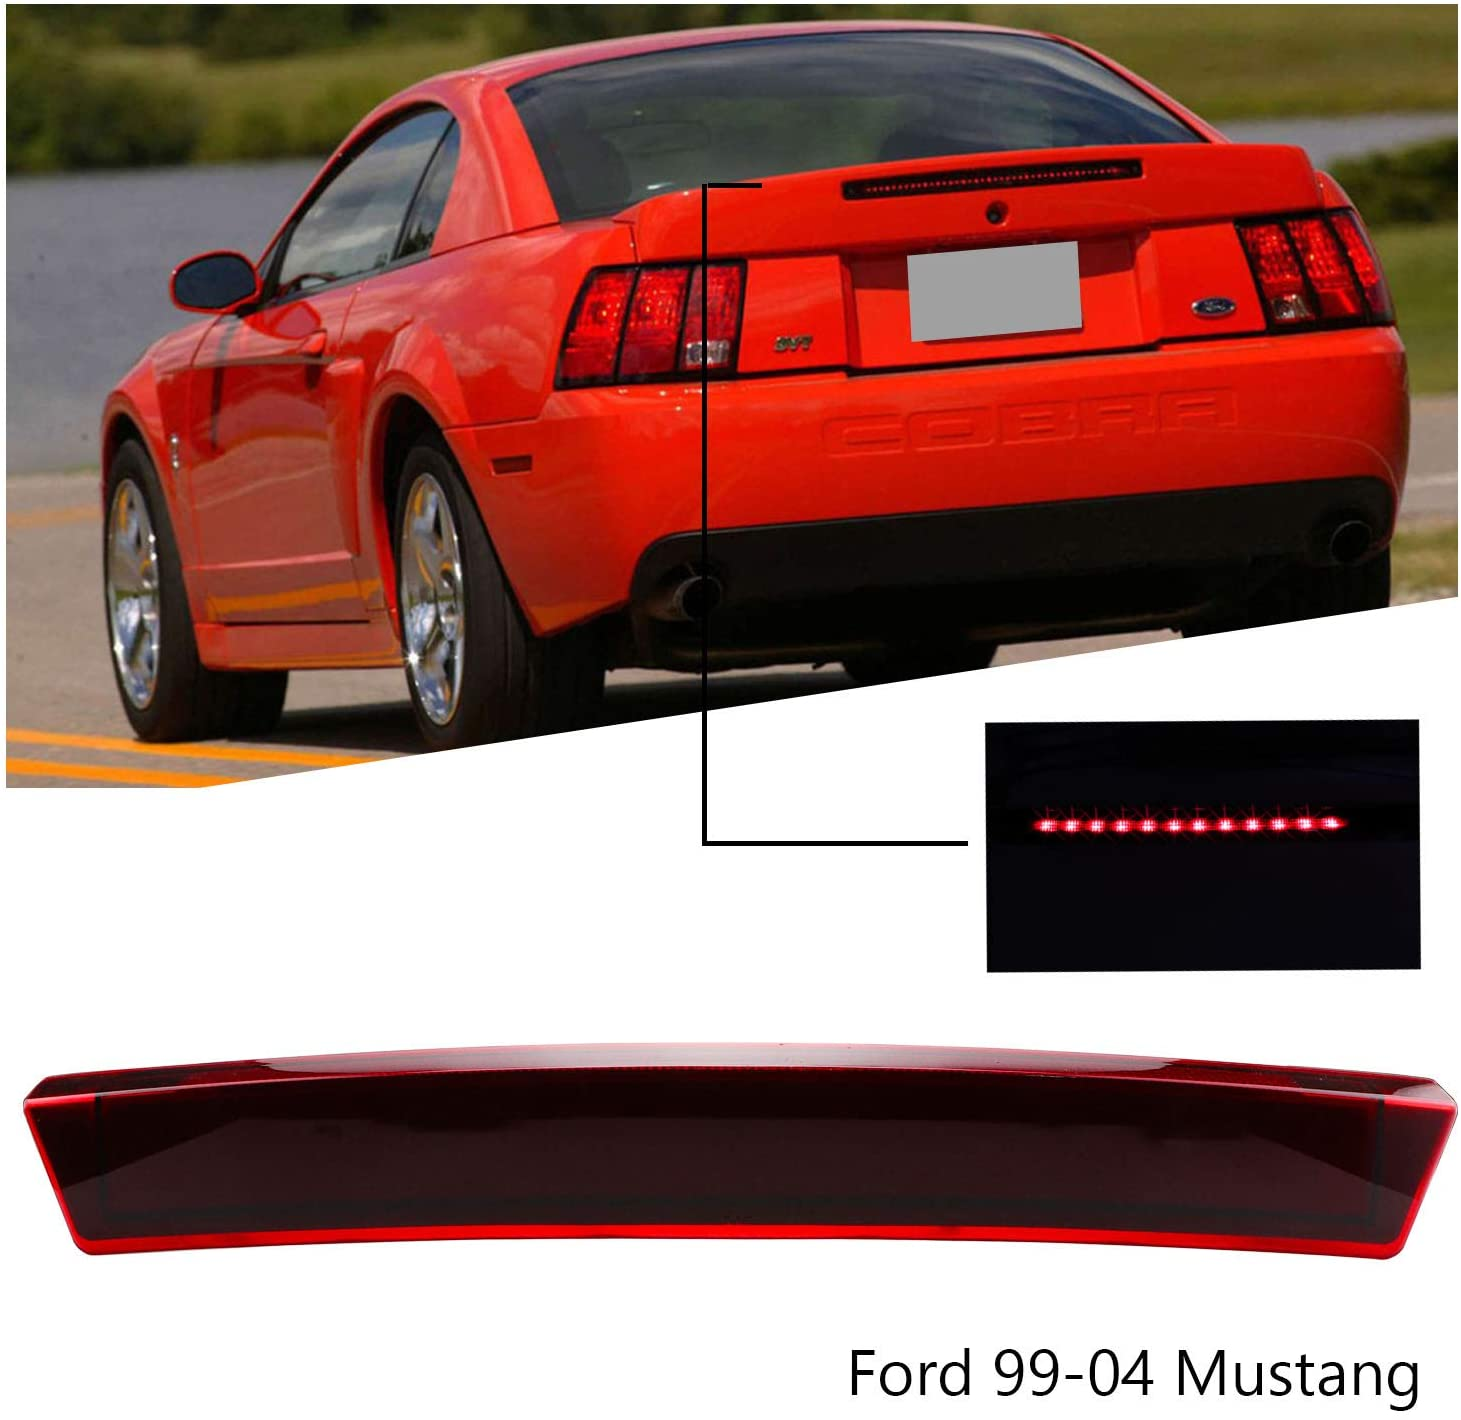 Smoke Center Hight Mount Stop Light Third 3rd Brake LED Lights Lamp Replacement for Ford 1999-2004 Mustang Cargo Lights Reverse Brake Lights